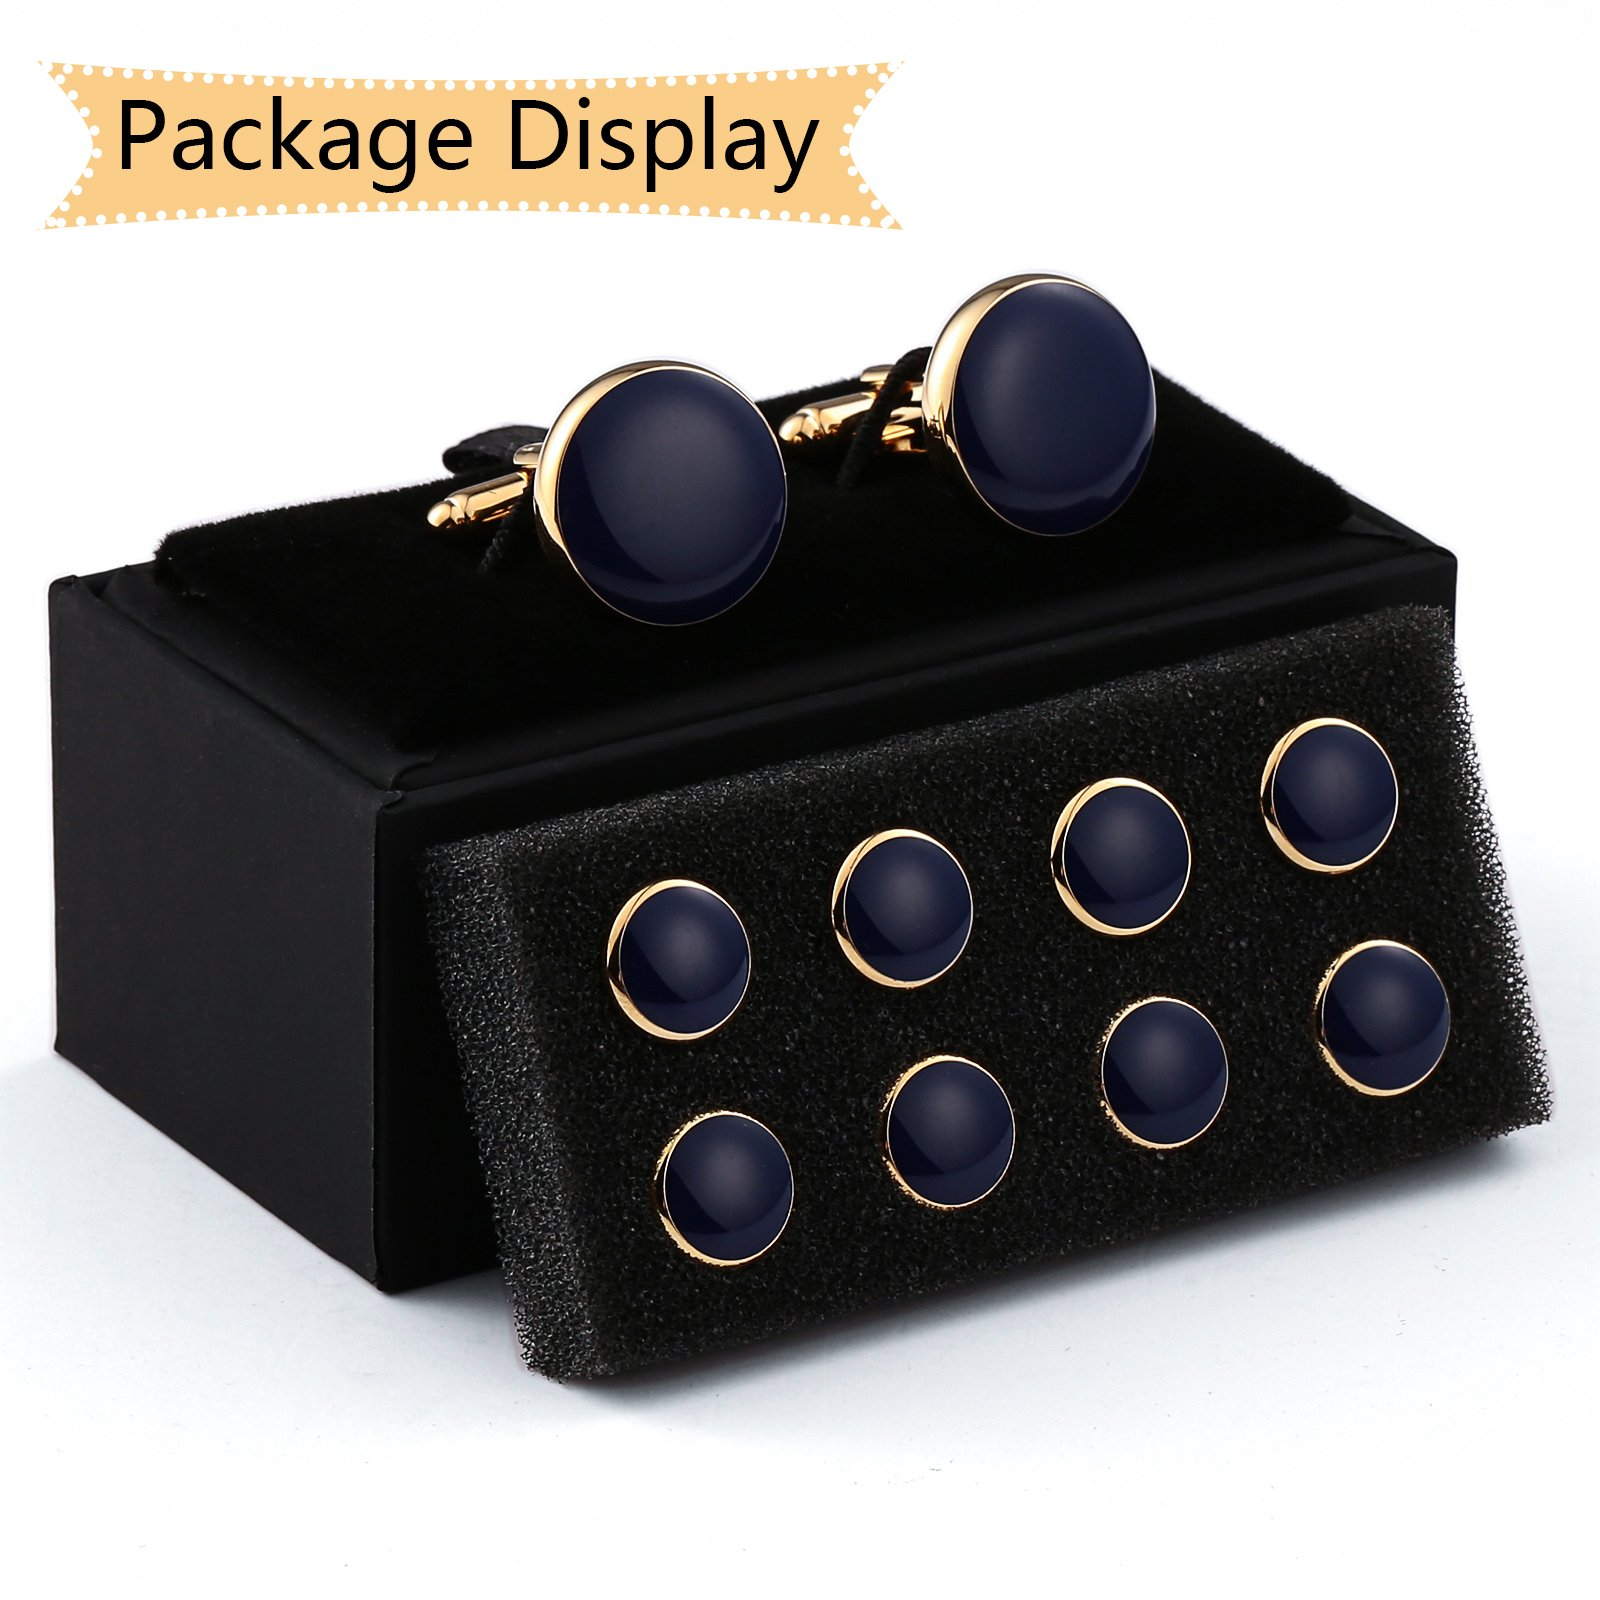 Aienid Mens Cufflinks and Studs for Men, Father of The Bride Cufflinks Set Tuxedo Shirts Bowtie Black by Aienid (Image #6)